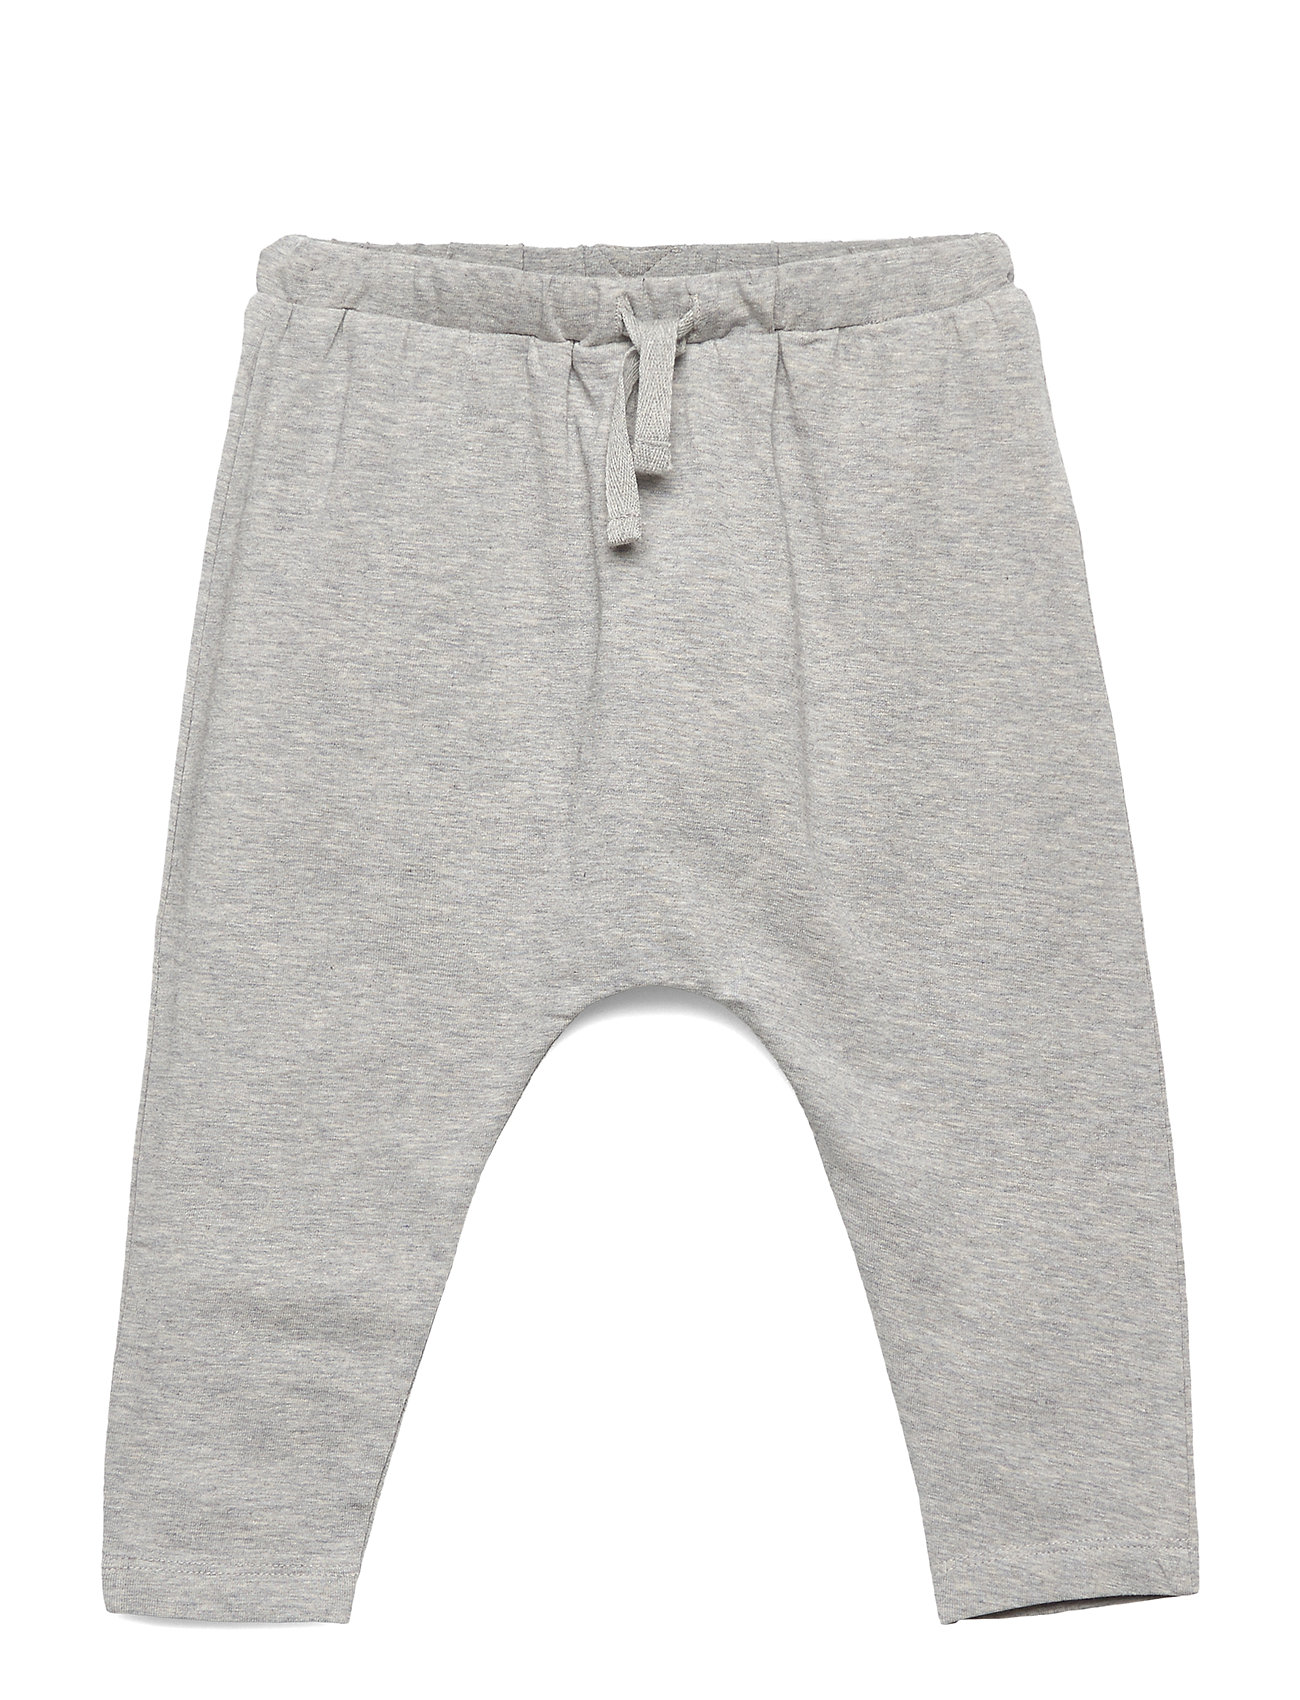 Soft Gallery Hailey Pants - GREY MELANGE, SOFT OWL